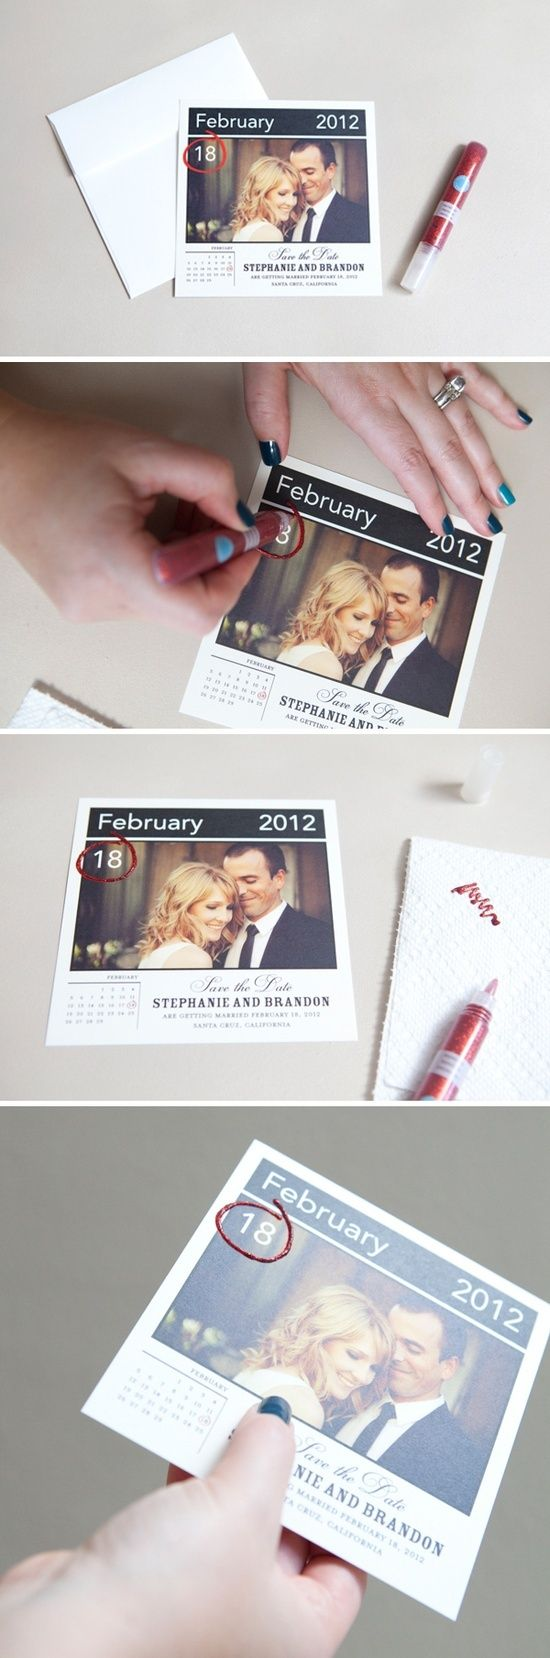 Save the Date idea - wish-upon-a-wedding    I like this because it looks like a polaroid picture. Now I'm thinking of Polaroid save the dates!!